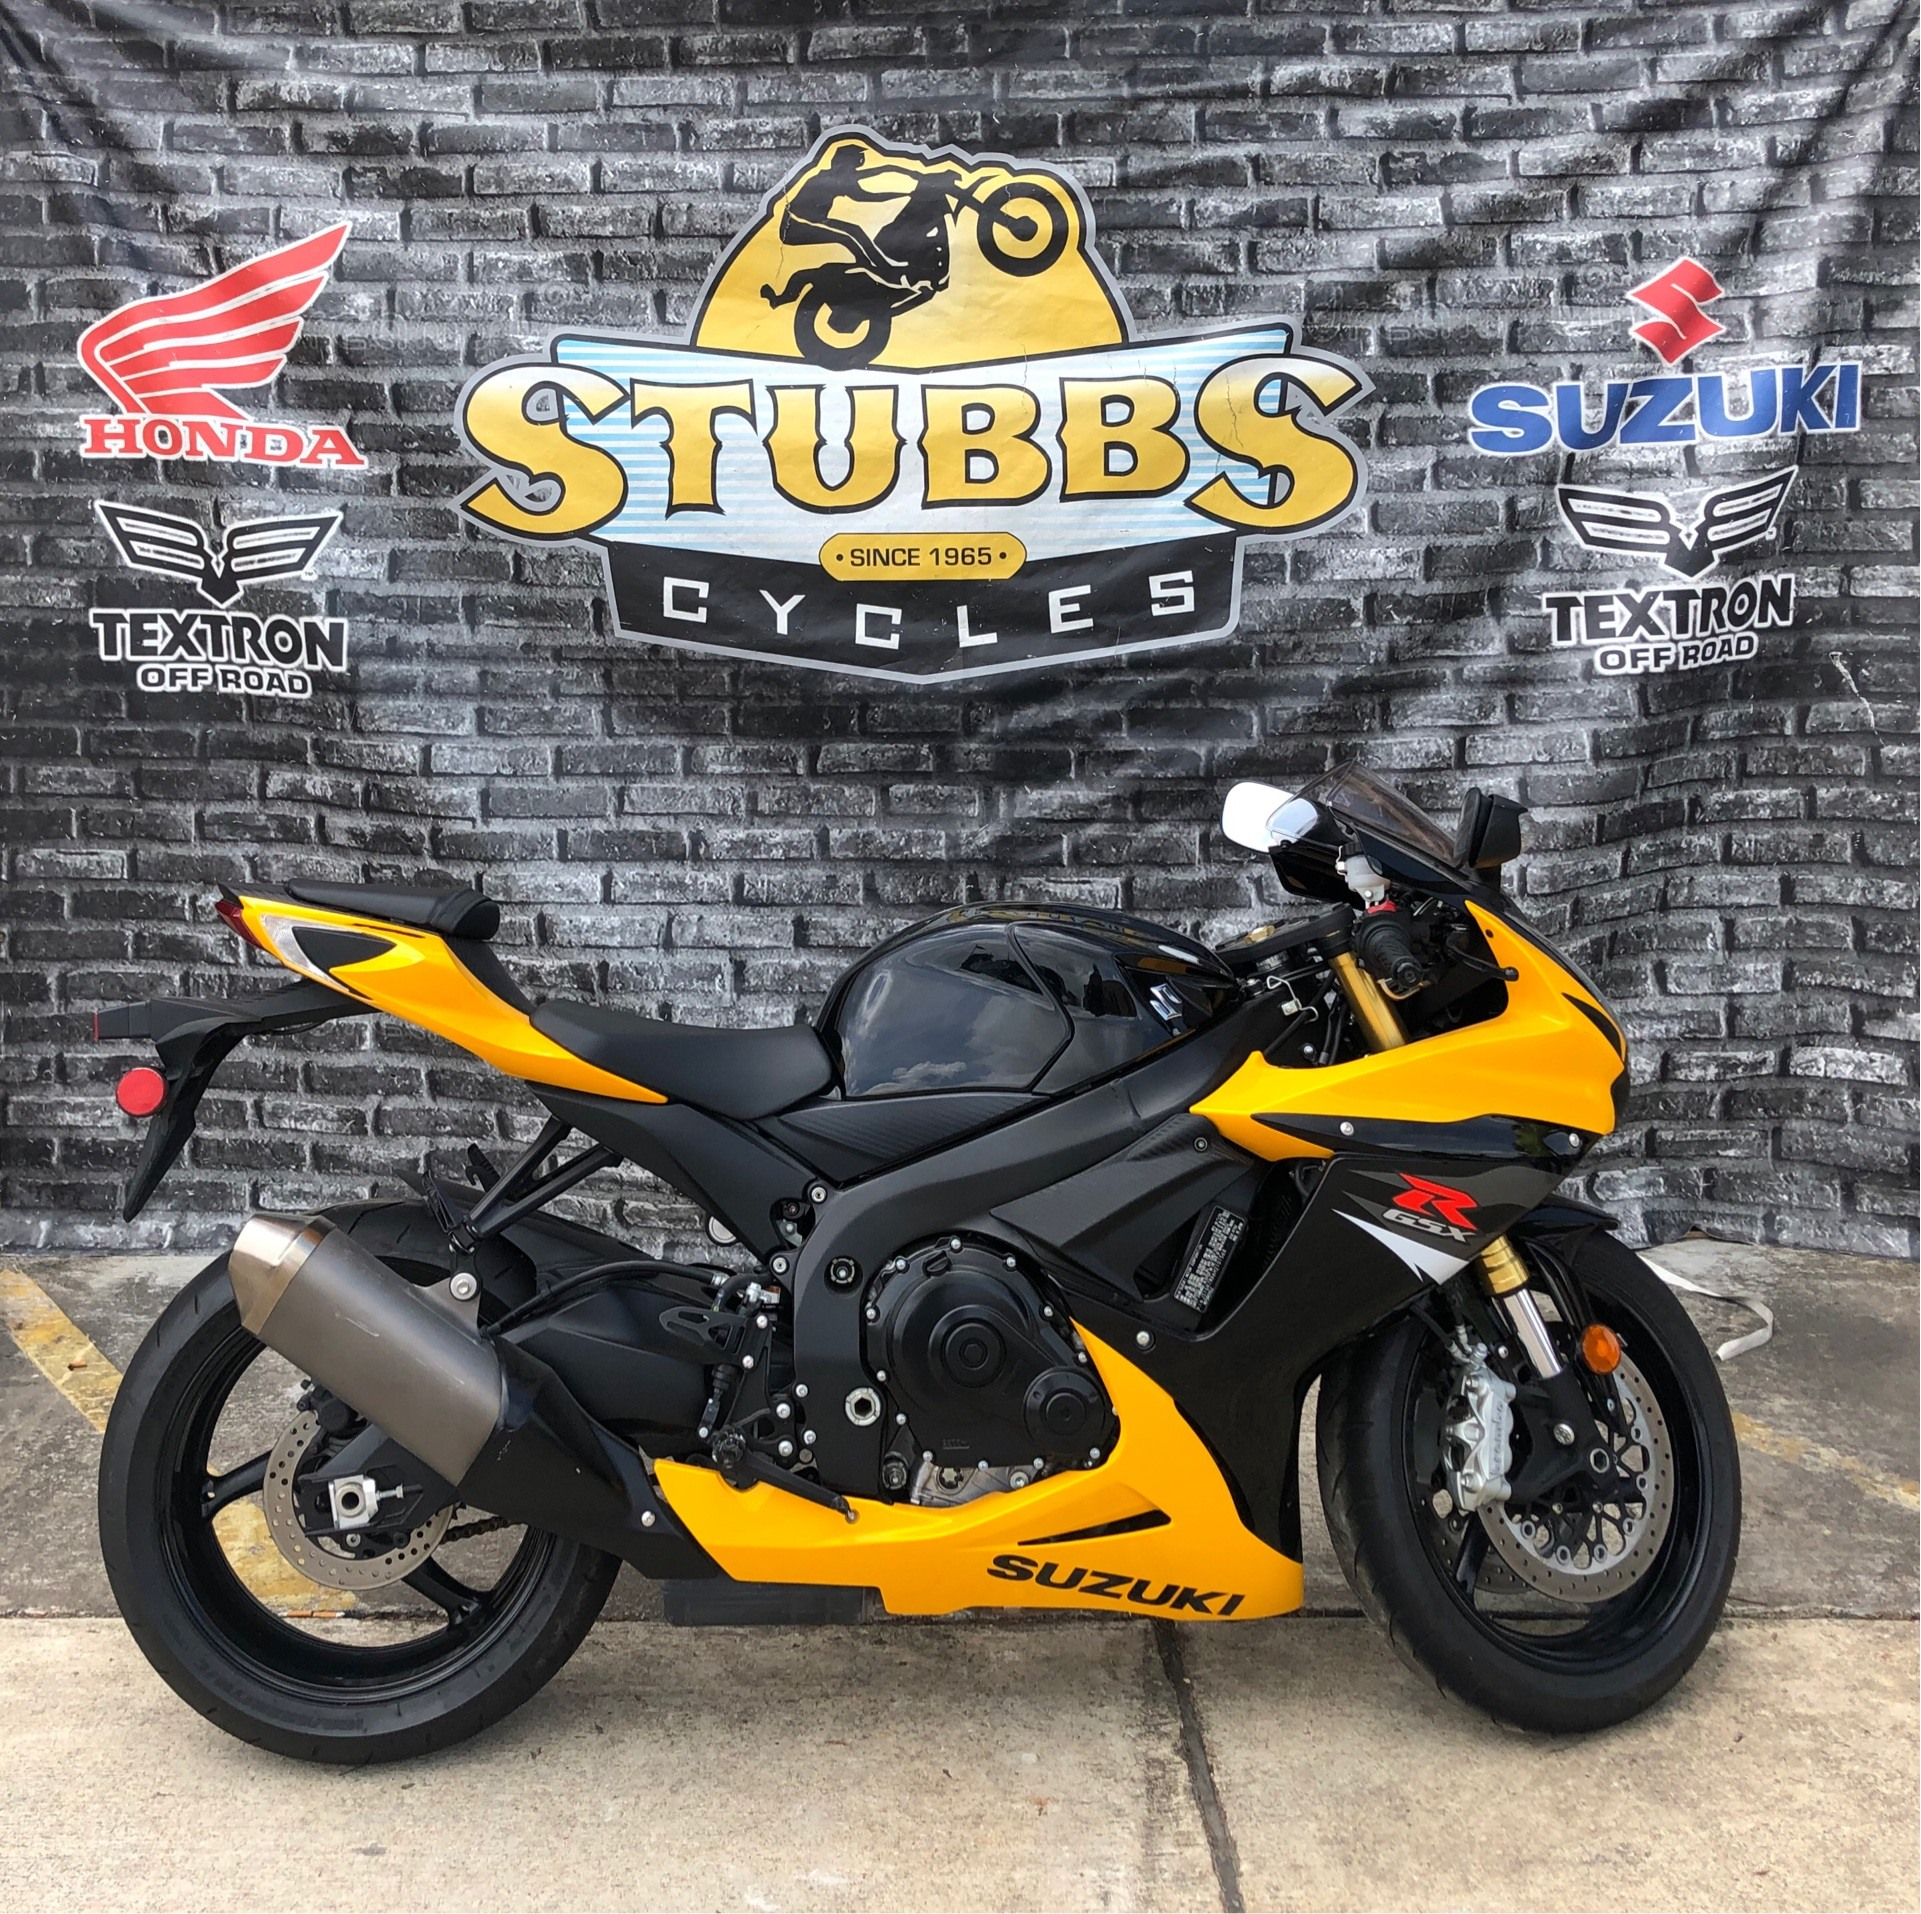 2017 Suzuki GSX-R750 in Houston, Texas - Photo 1